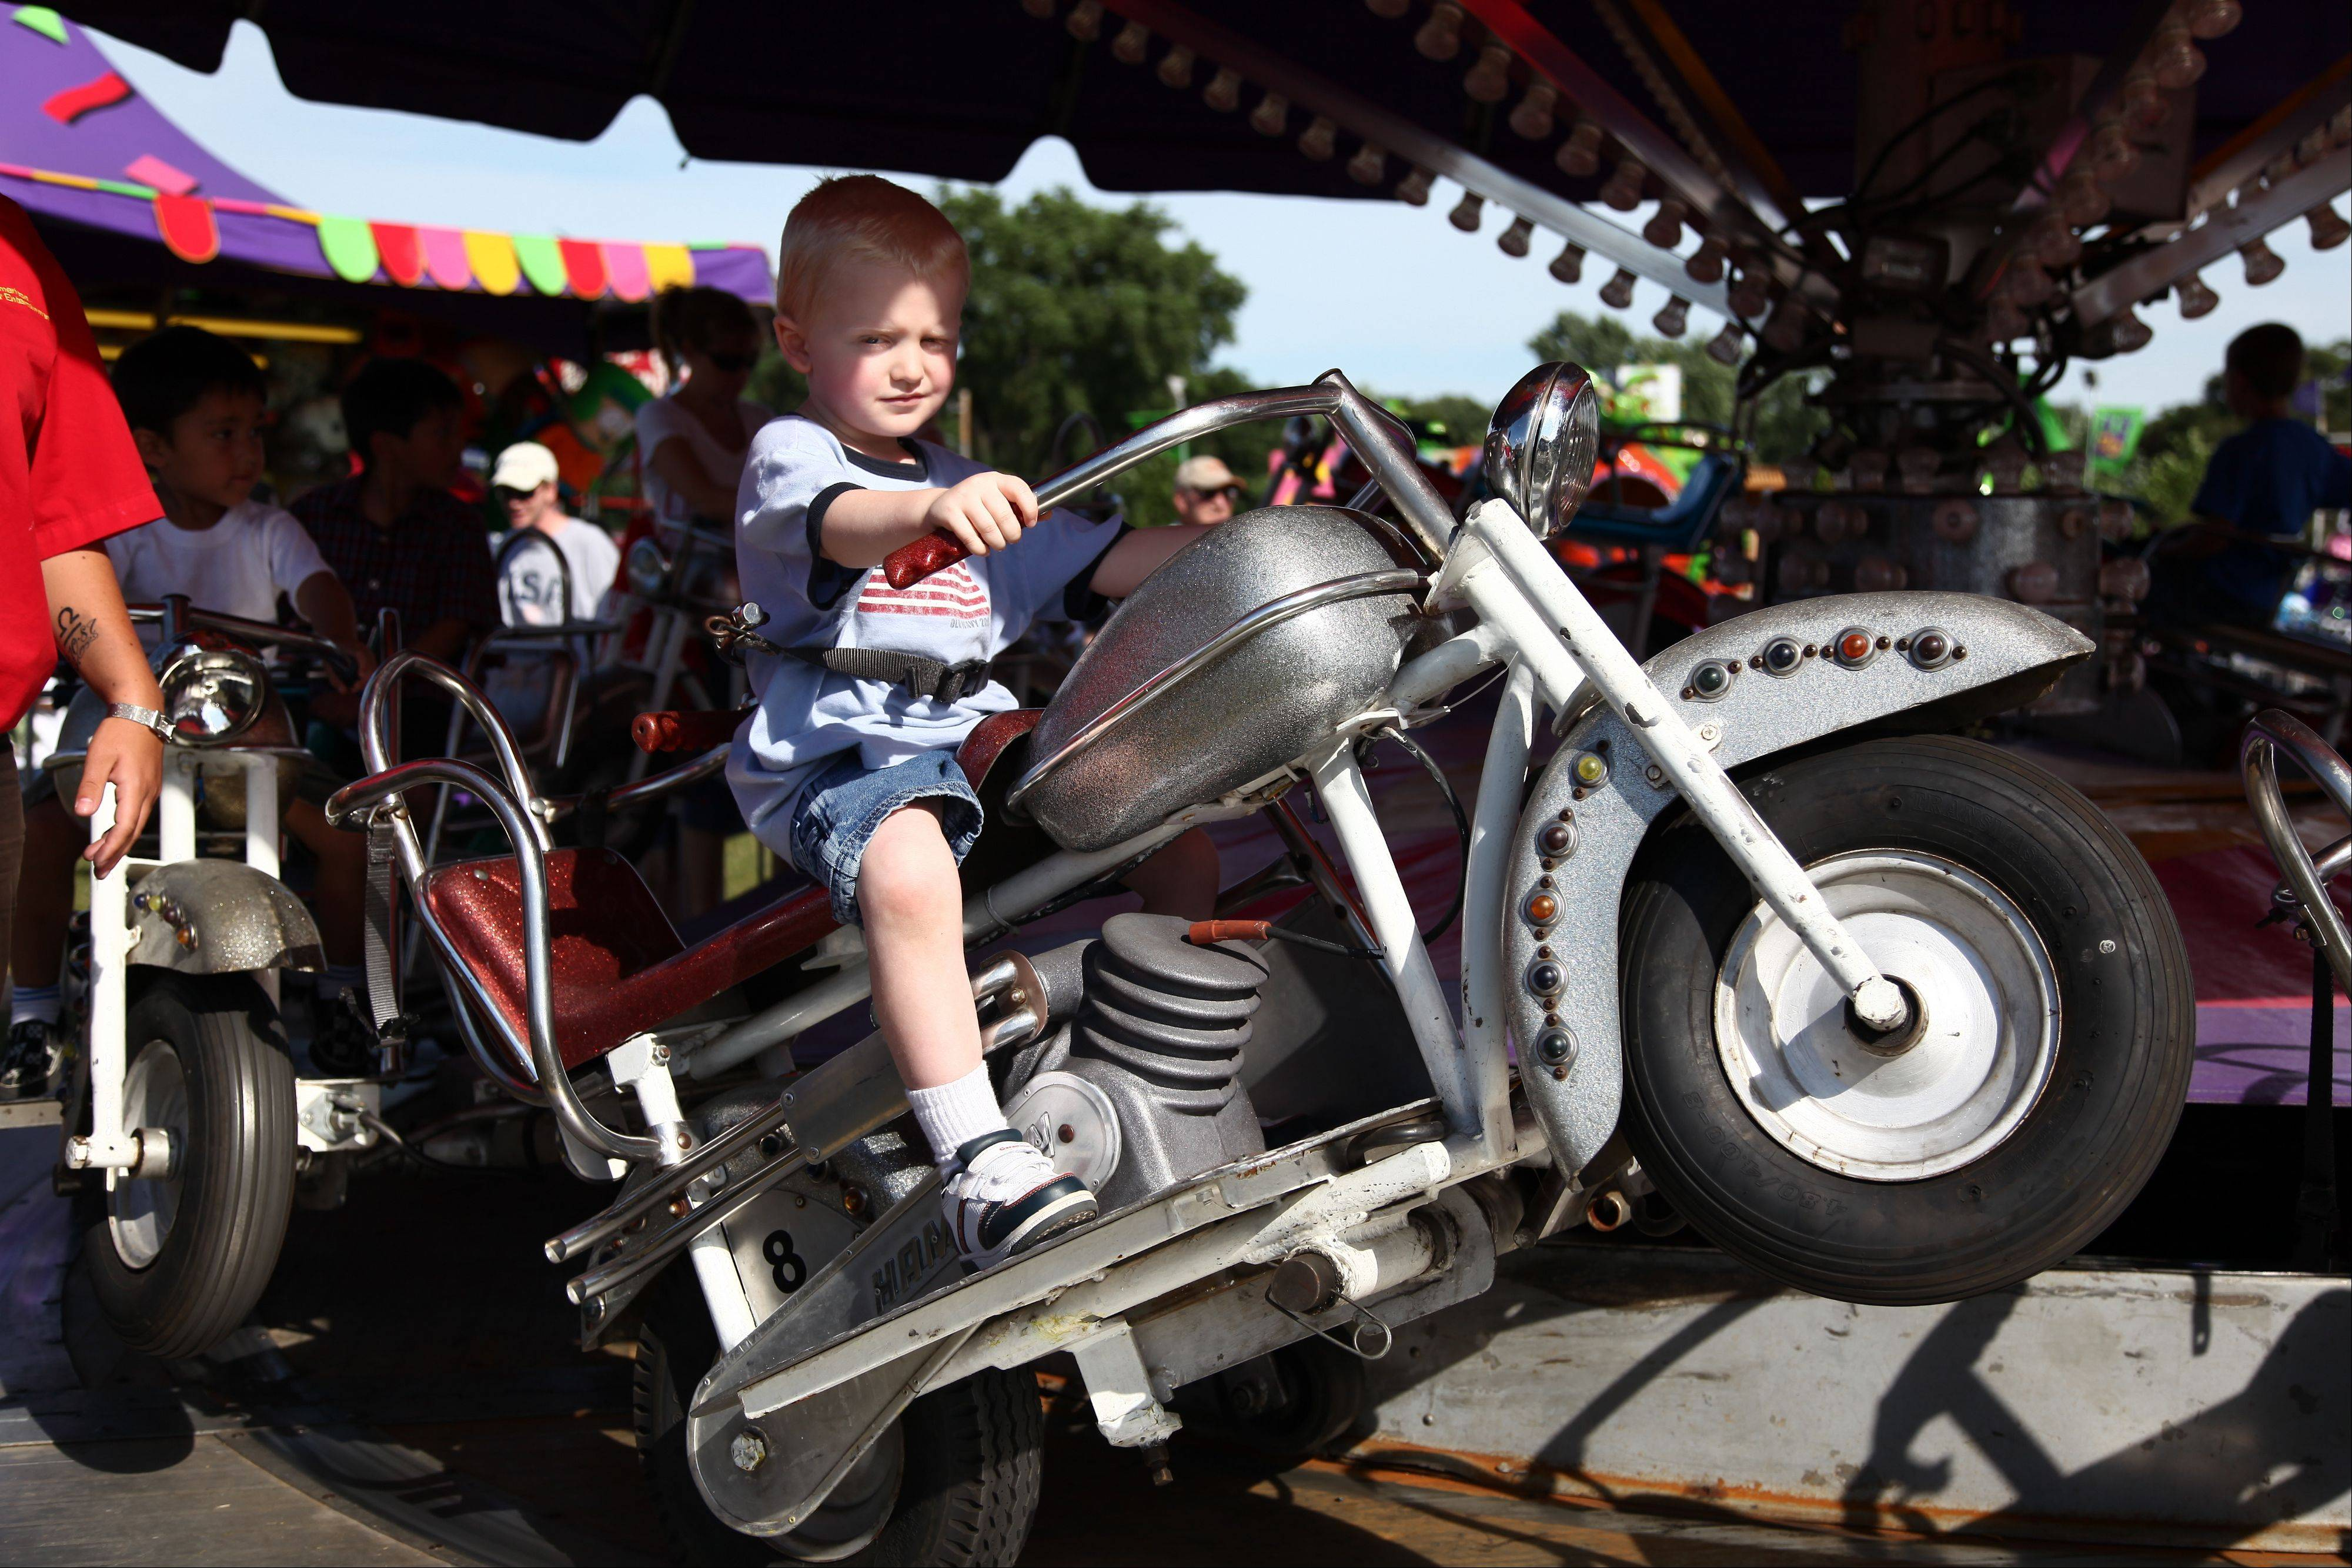 Take a spin on some carnival rides at West Chicago's annual Railroad Days at Reed Keppler Park.